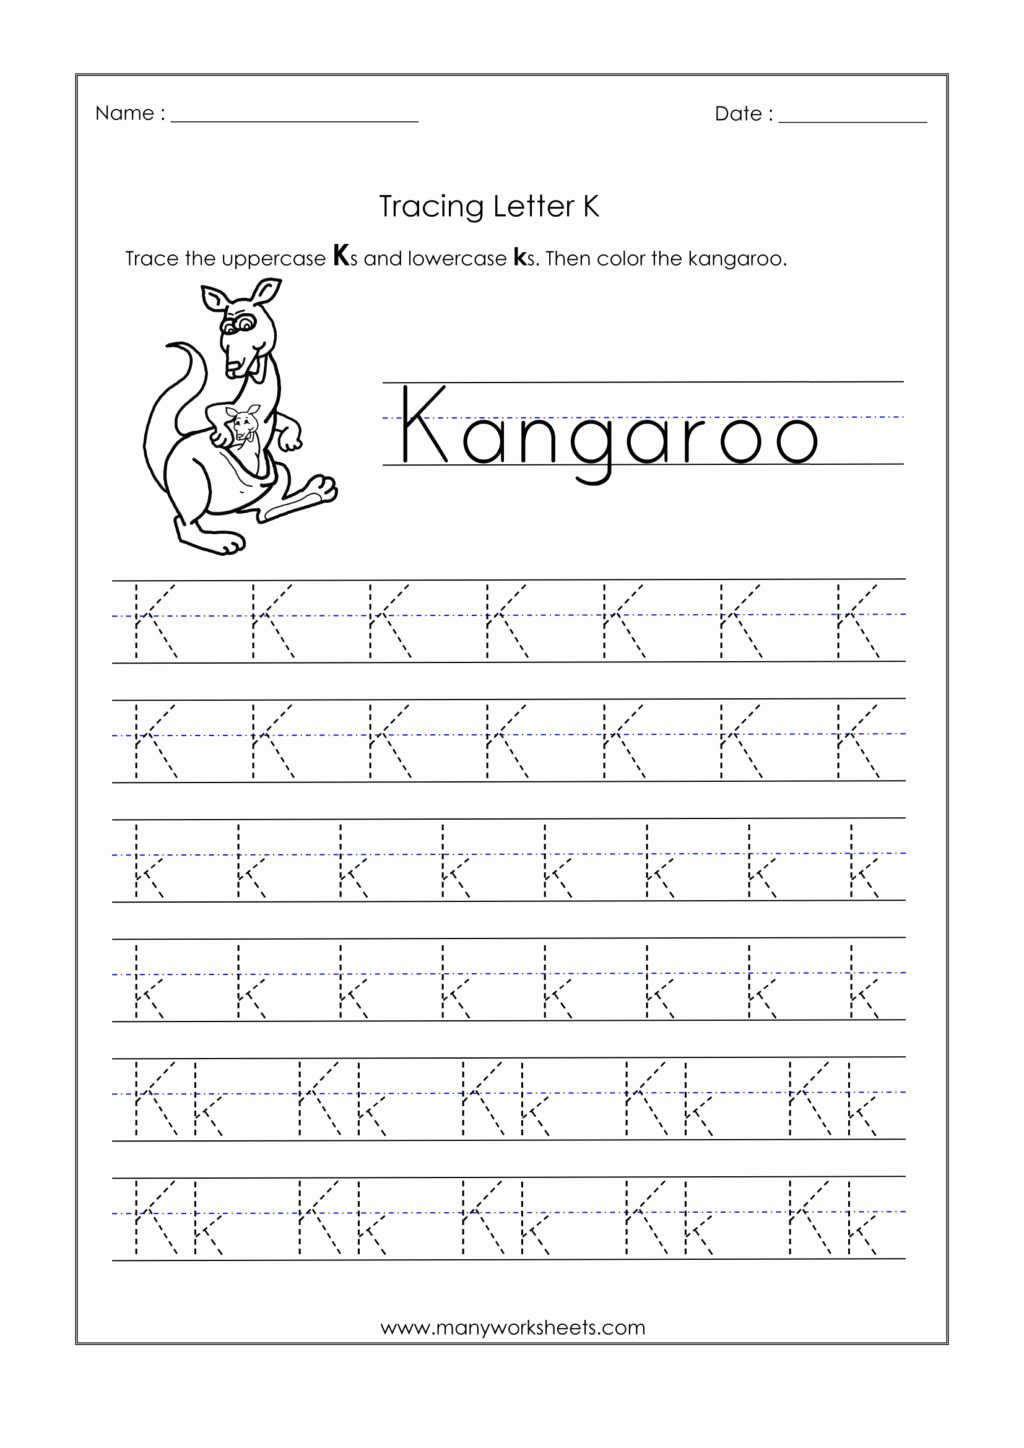 Letter K Tracing Worksheets Preschool Fresh Worksheet Worksheet Letter K Tracing Worksheets for